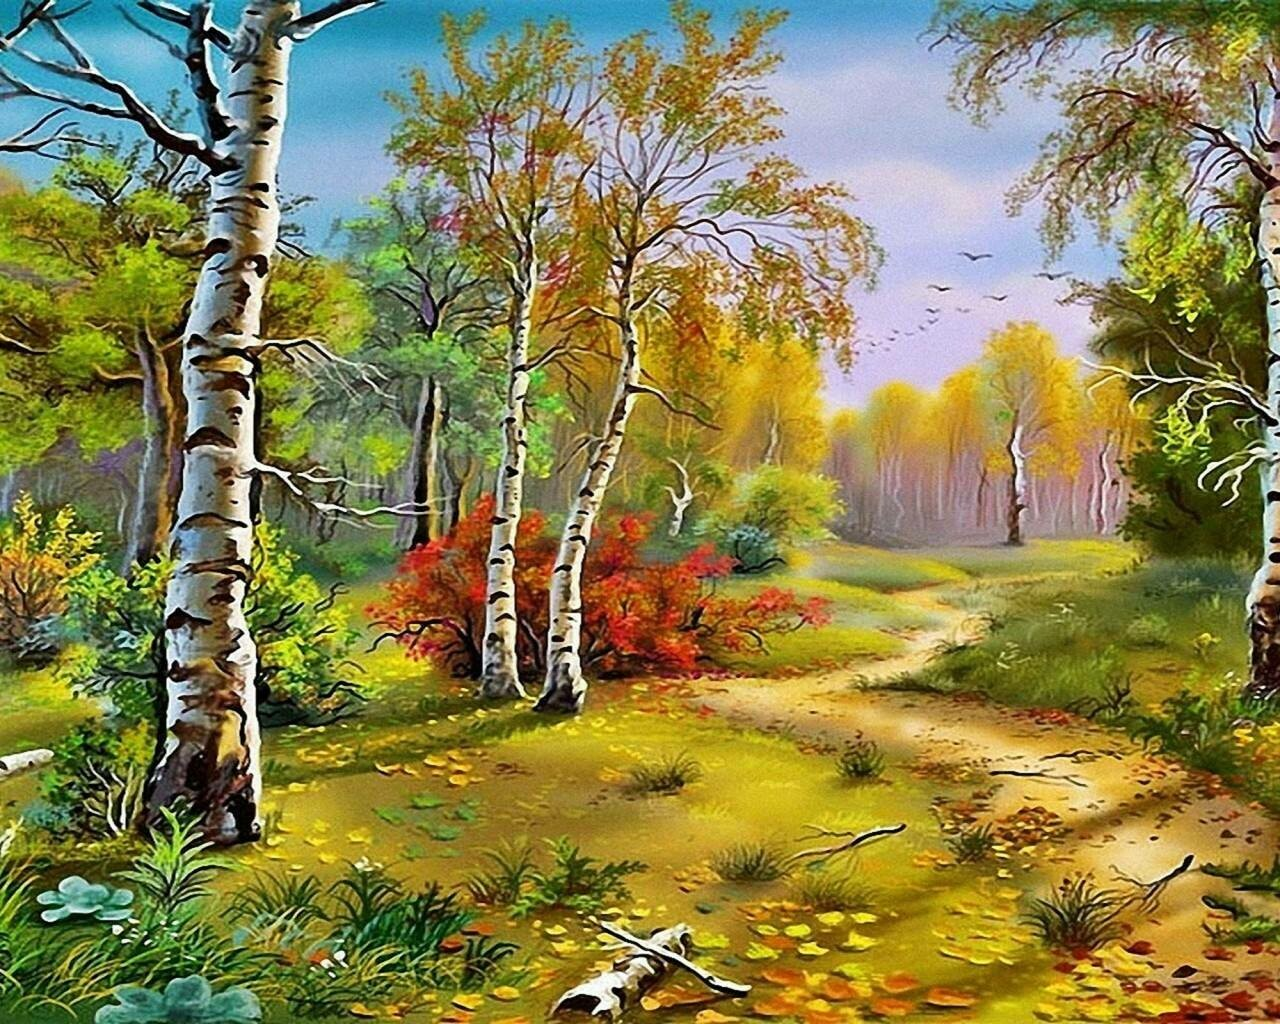 Scenery Artwork 04 - Full Drill Diamond Painting - Specially ordered for you. Delivery is approximately 4 - 6 weeks.